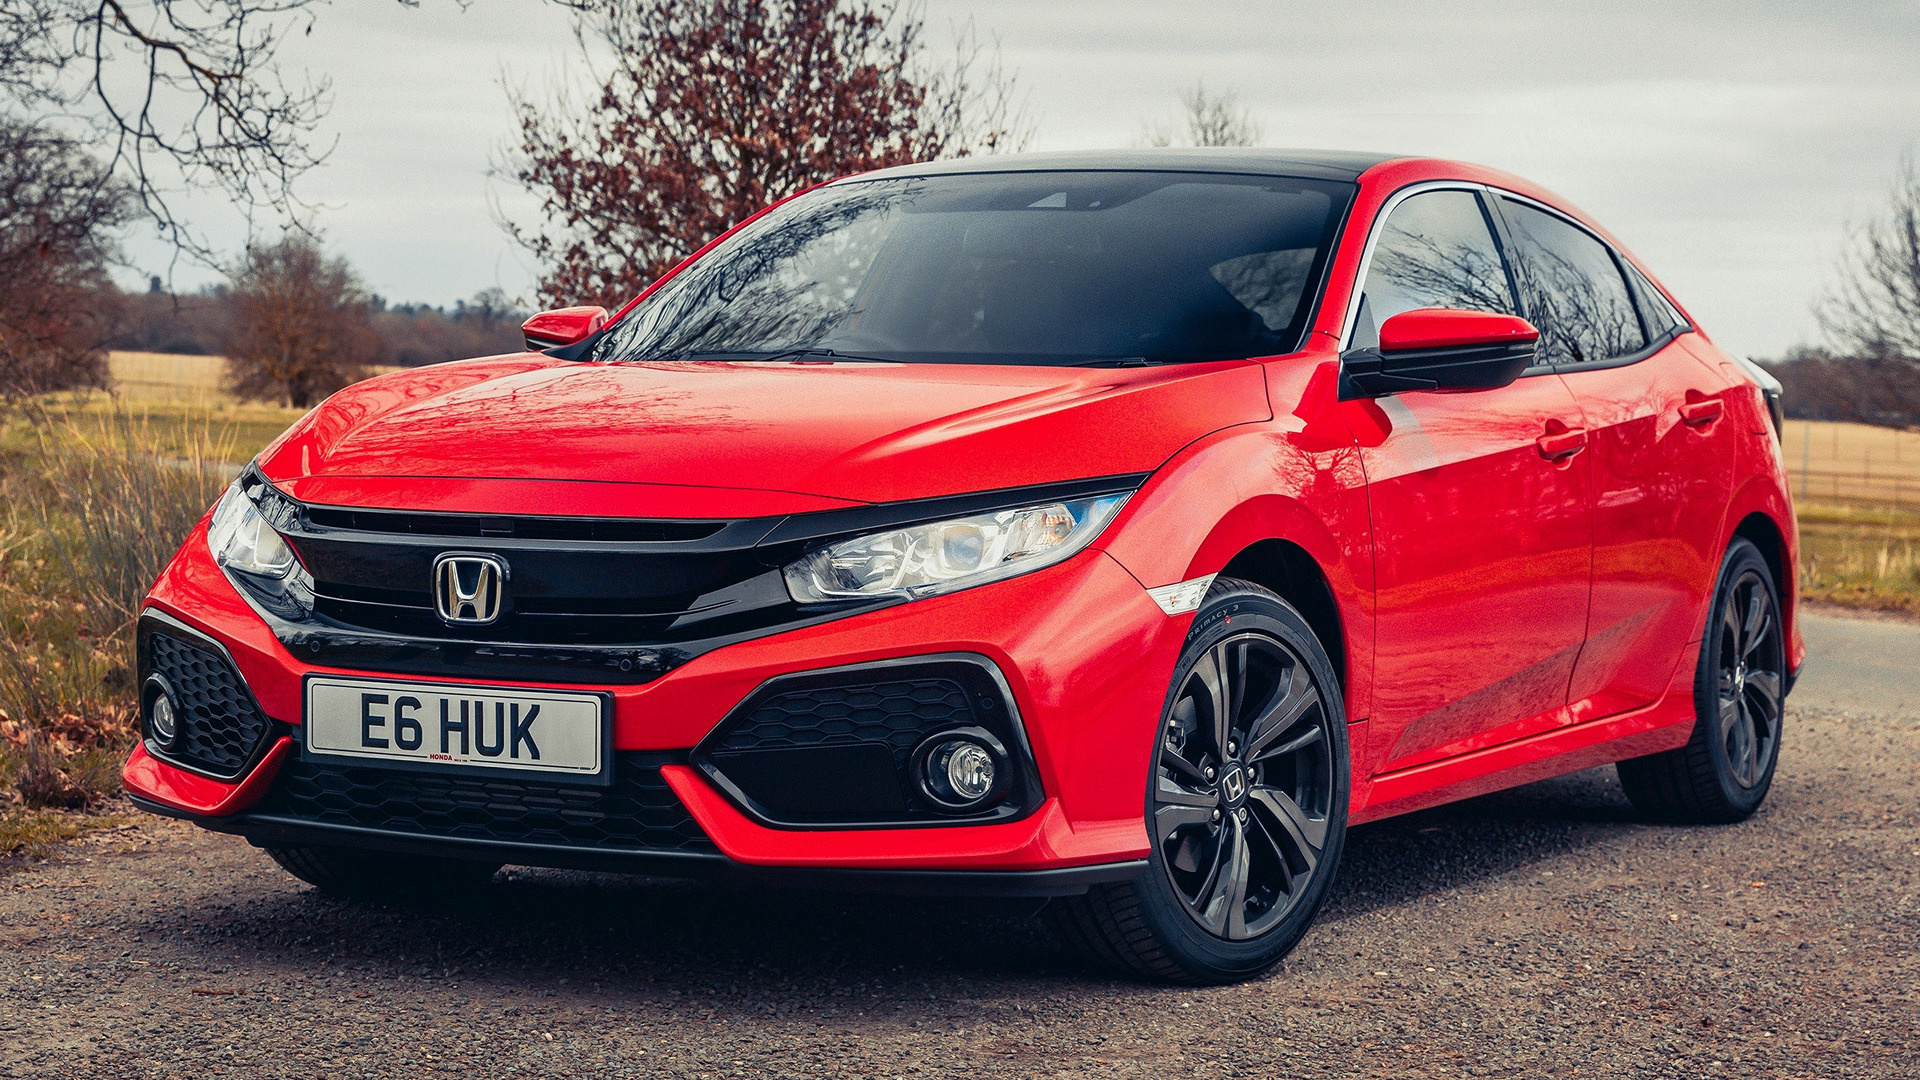 honda civic (2017) uk wallpapers and hd images - car pixel